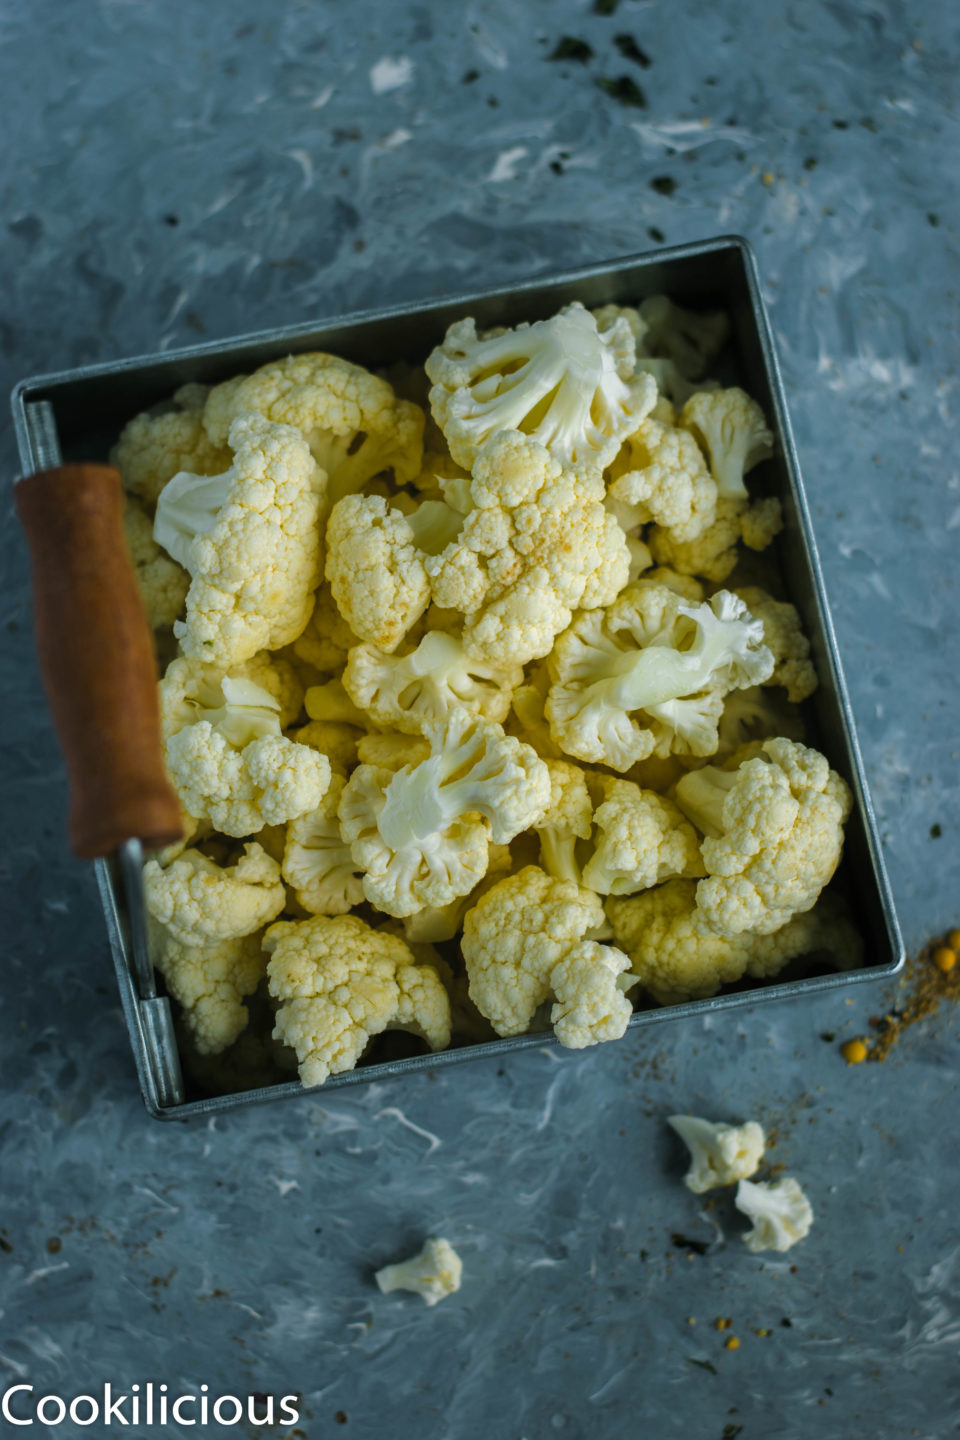 cauliflower florets in a dish used to make Indian cauliflower curry